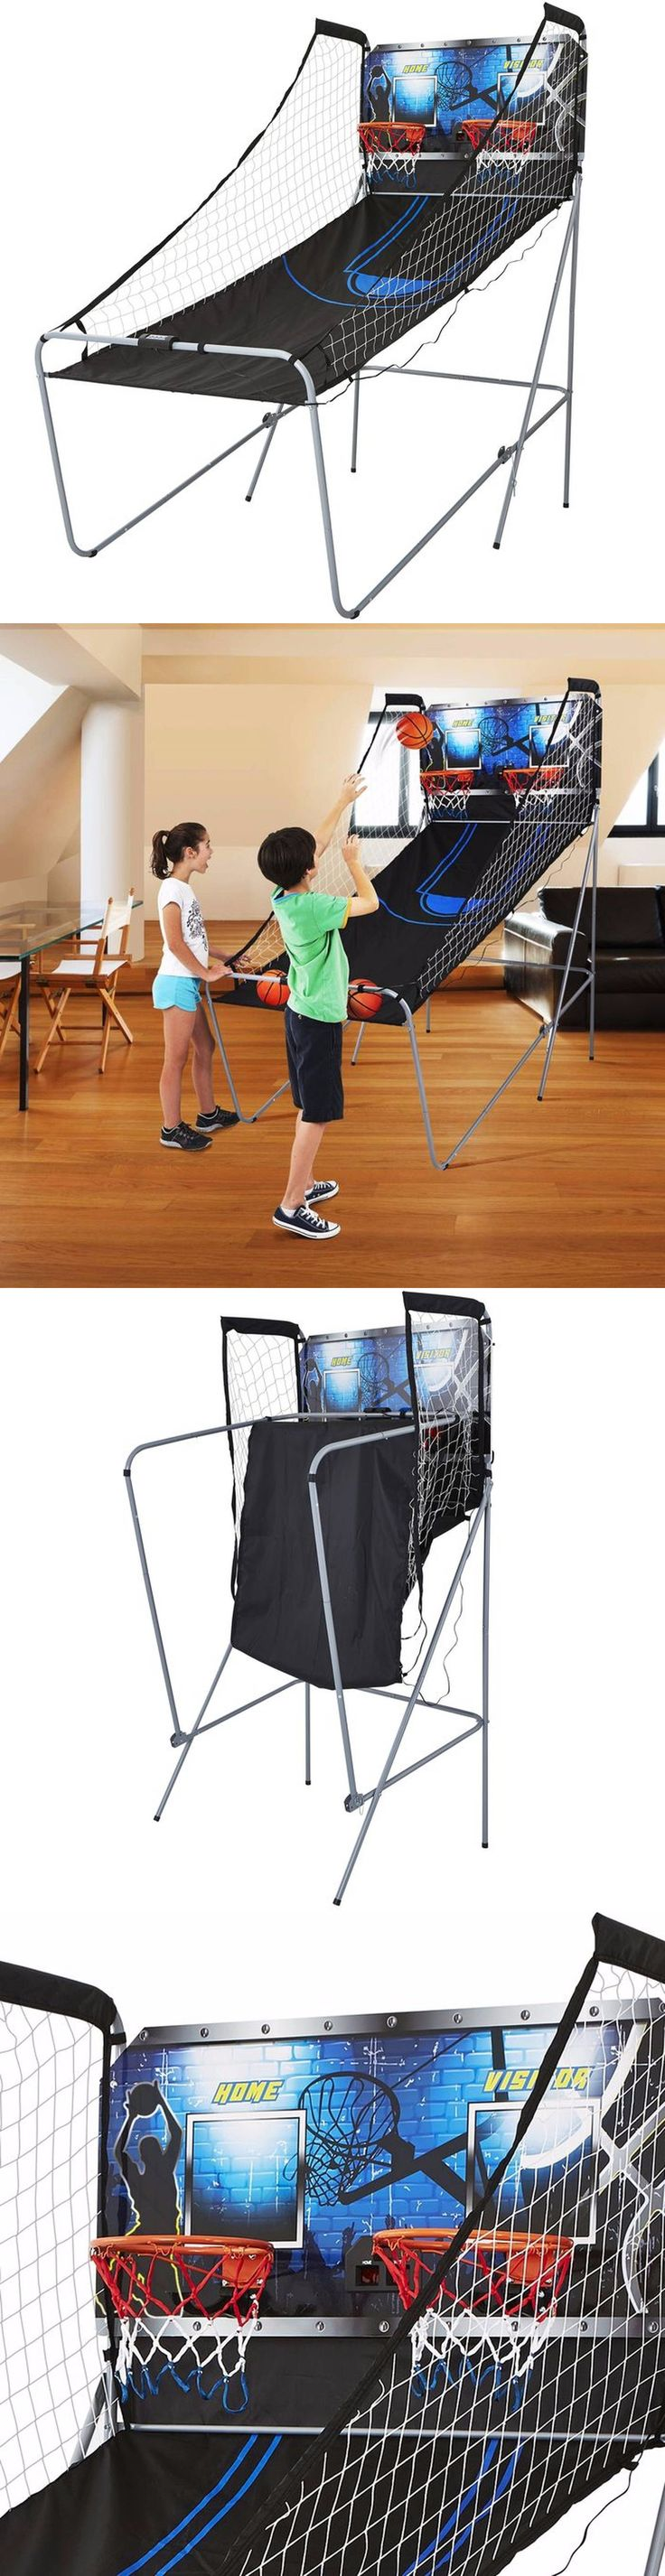 Other Indoor Games 36278: 2-Player Arcade Basketball Game Led Scoring Sound 8 Game Options Metal Frame BUY IT NOW ONLY: $90.59